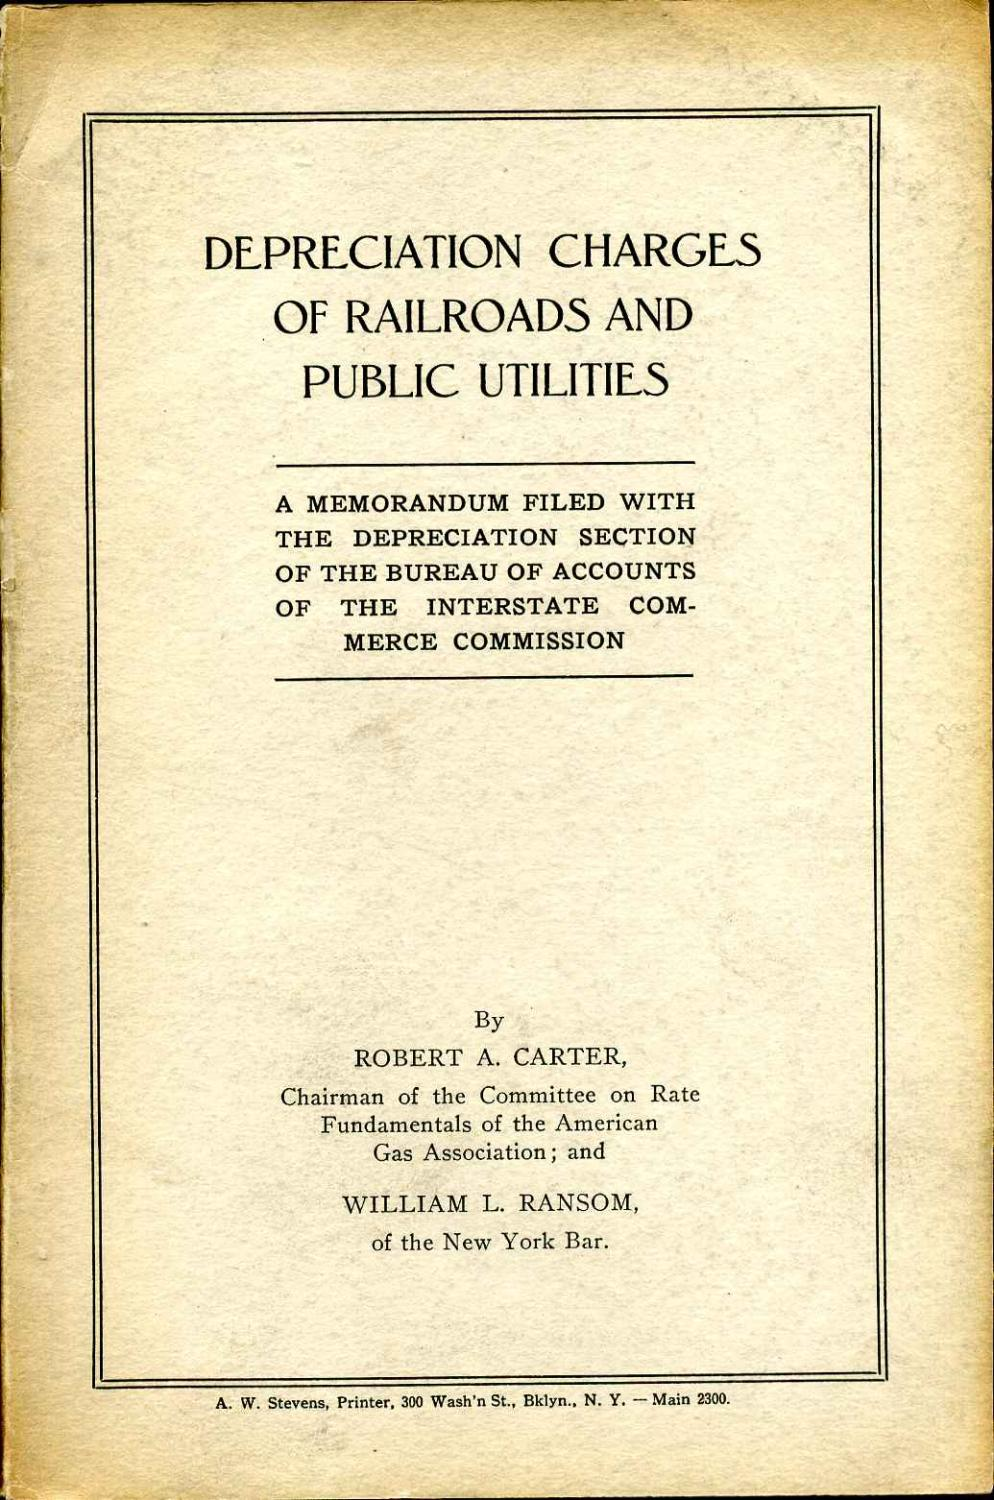 DEPRECIATION CHARGES OF RAILROADS AND PUBLIC UTILITIES.: Carter, Robert A.;